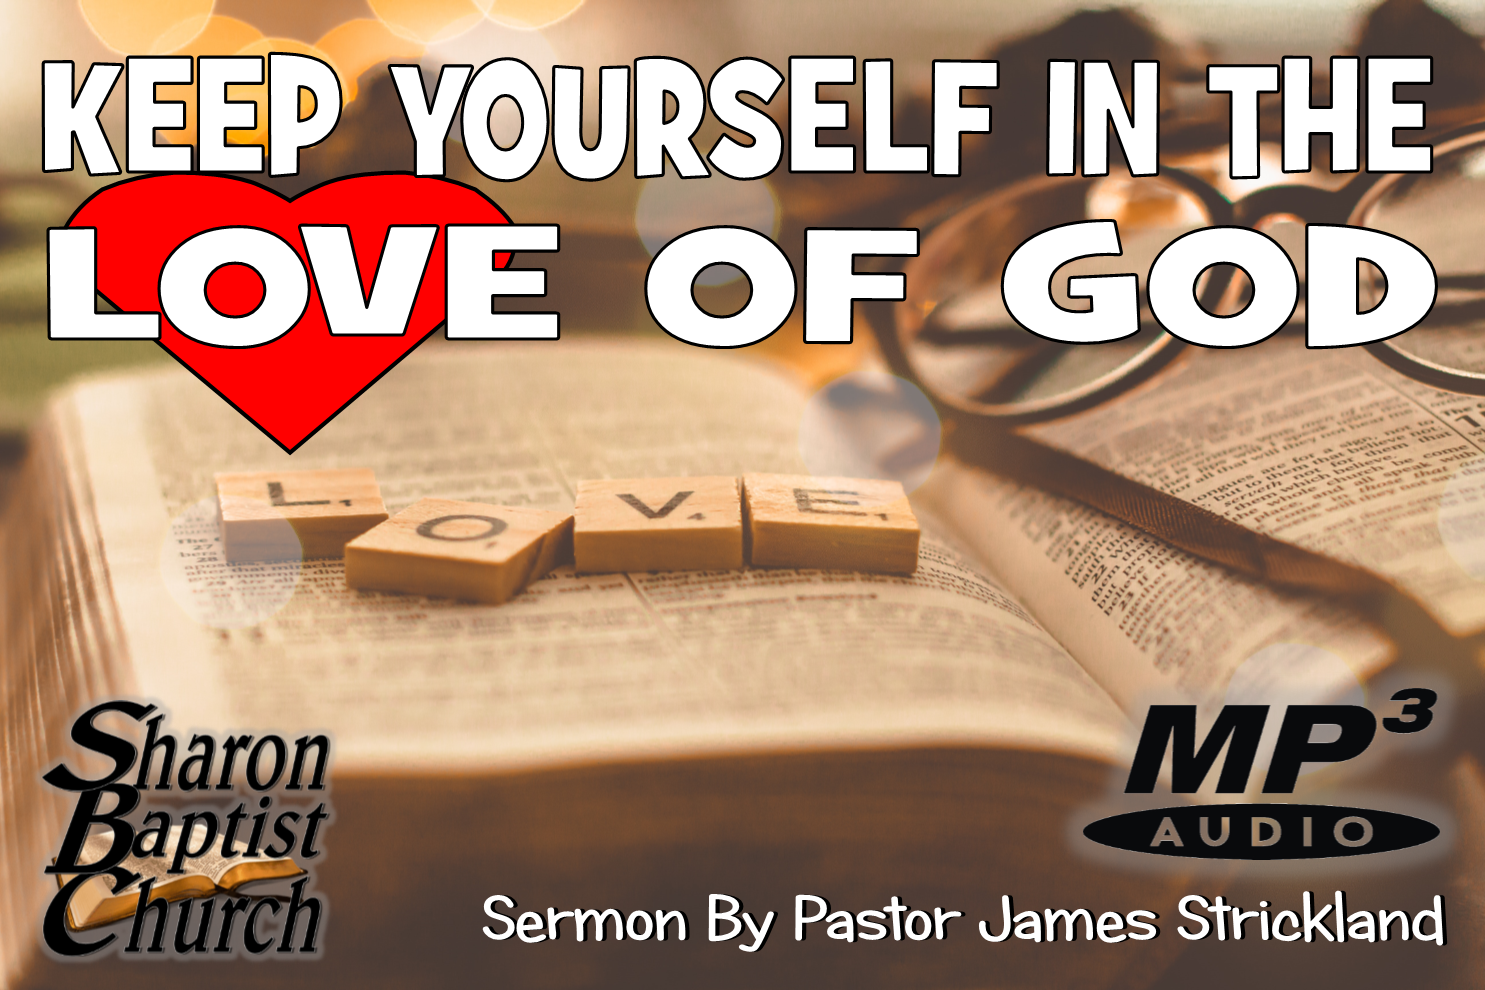 Keep yourself in the Love of God Sermon AUDIO